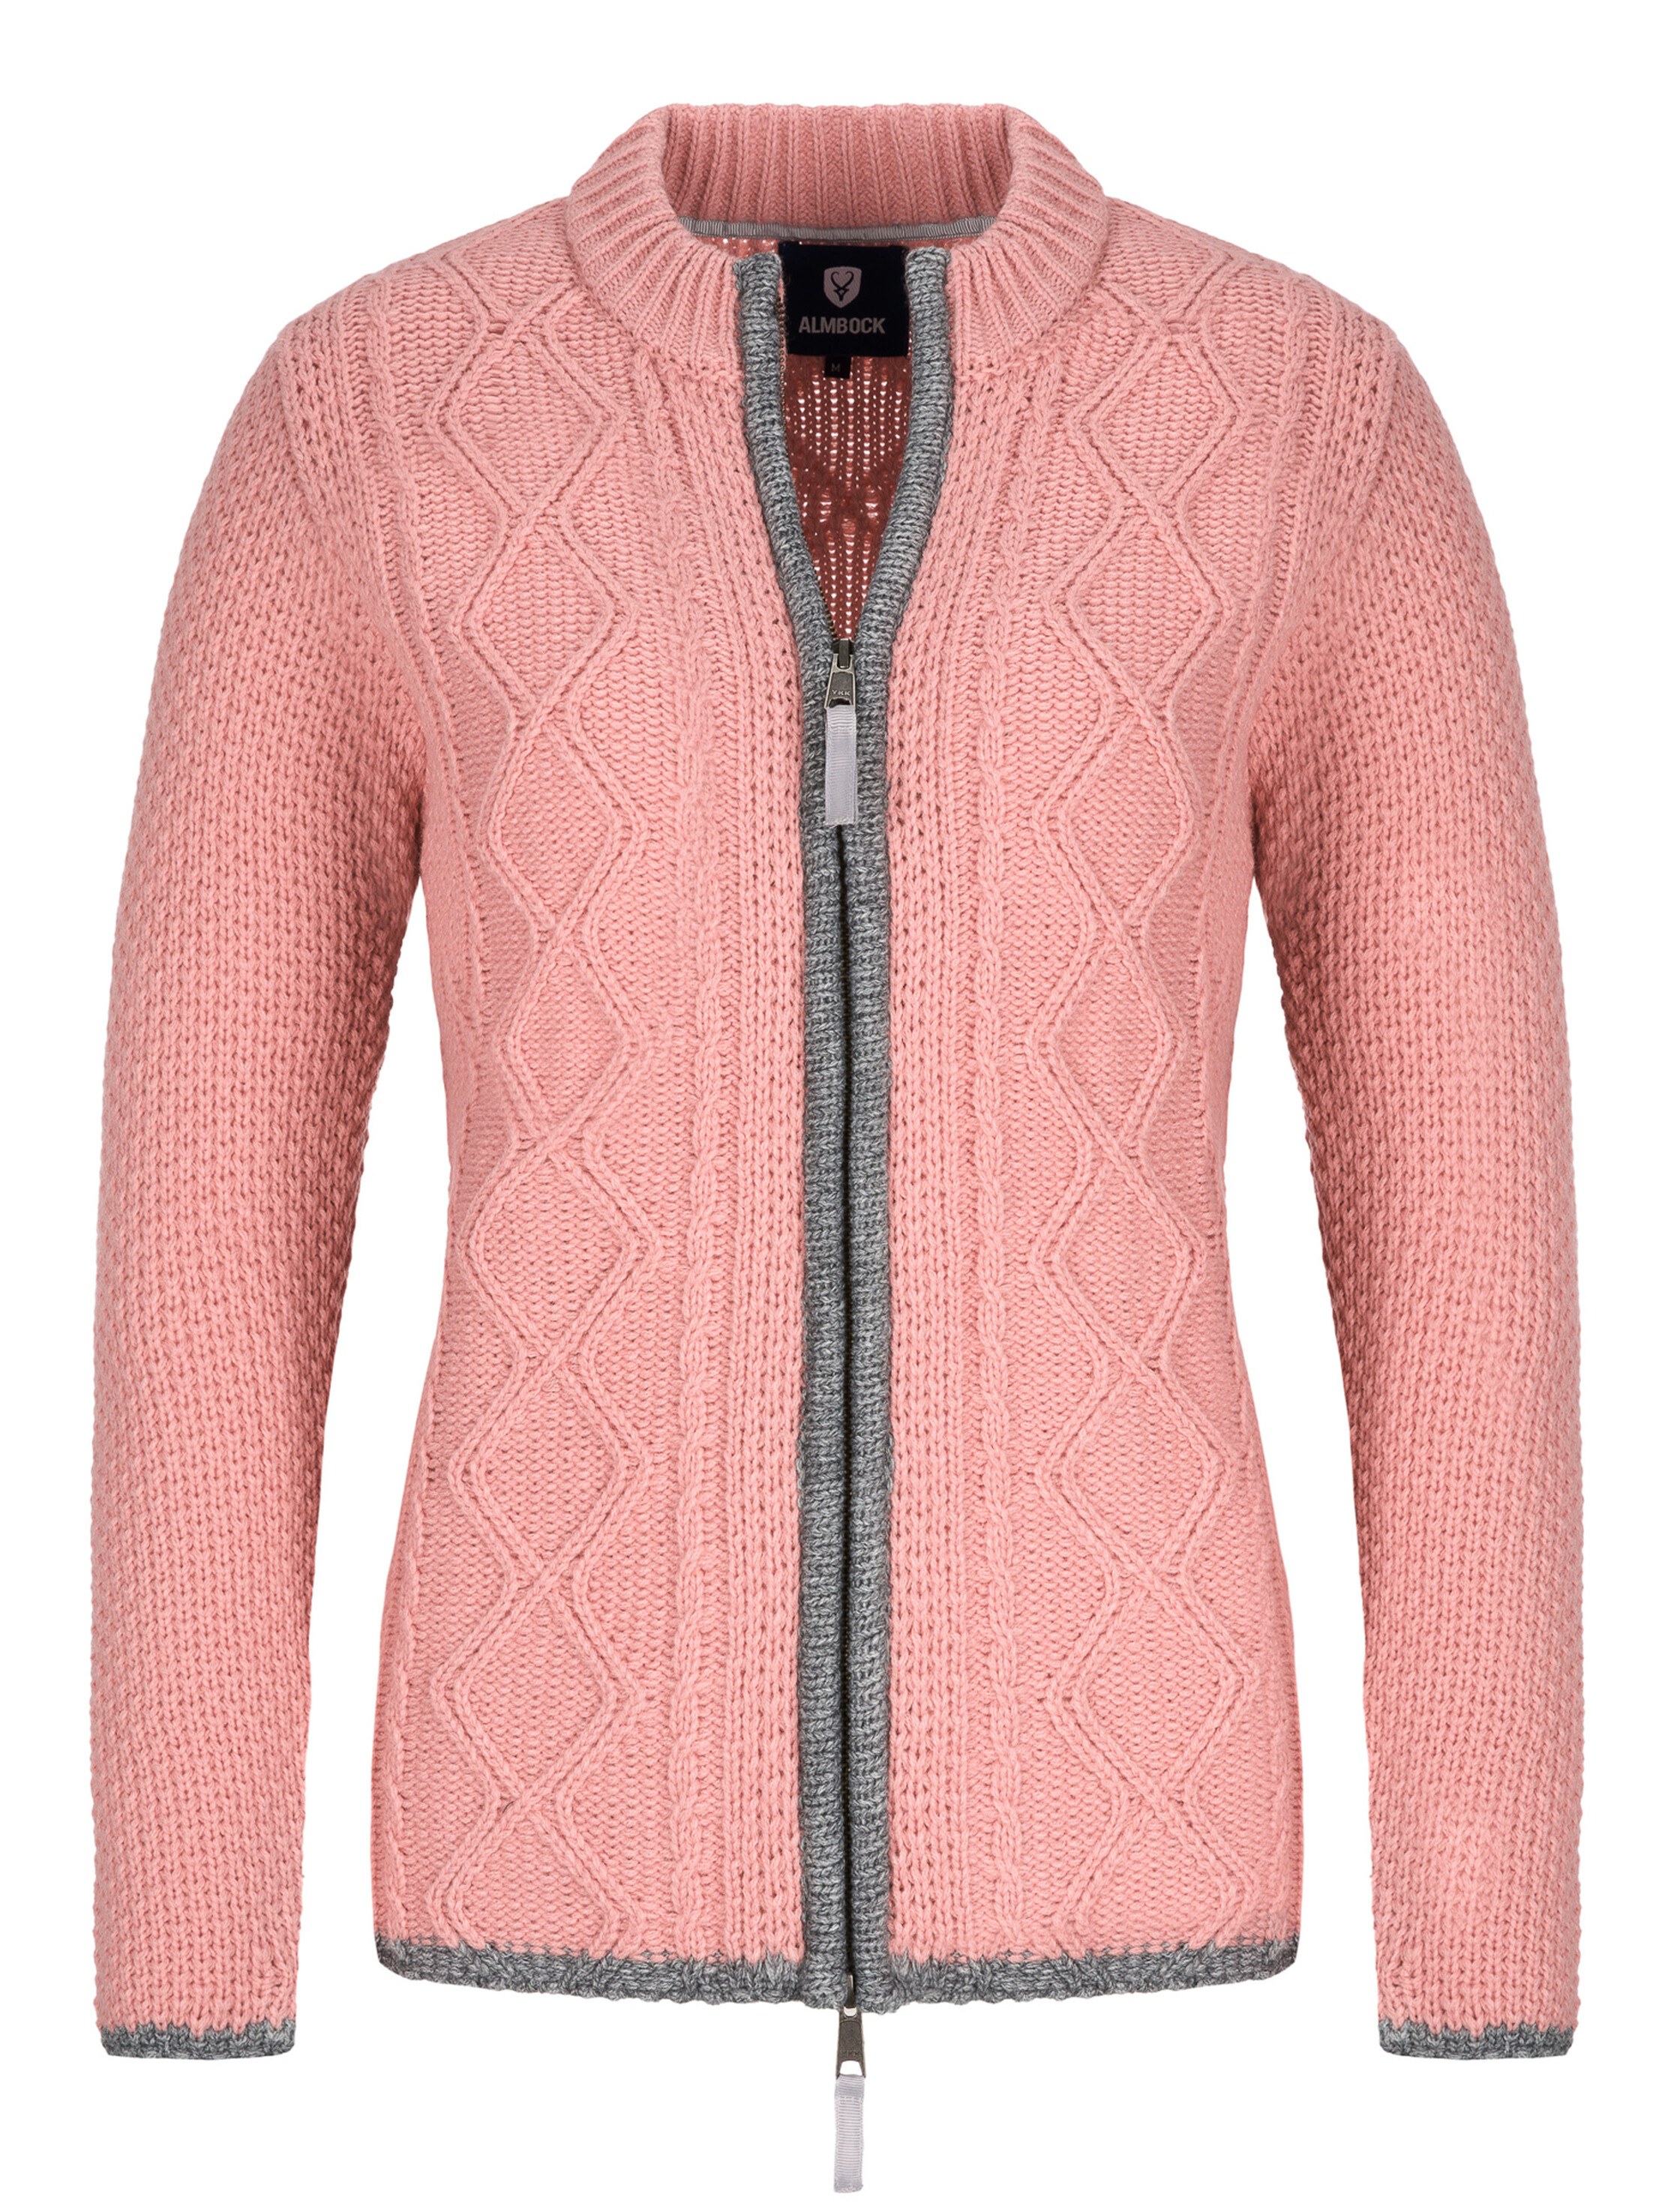 076aef81a7 bavarian-ladies-cardigan-alina-antique-pink.jpg